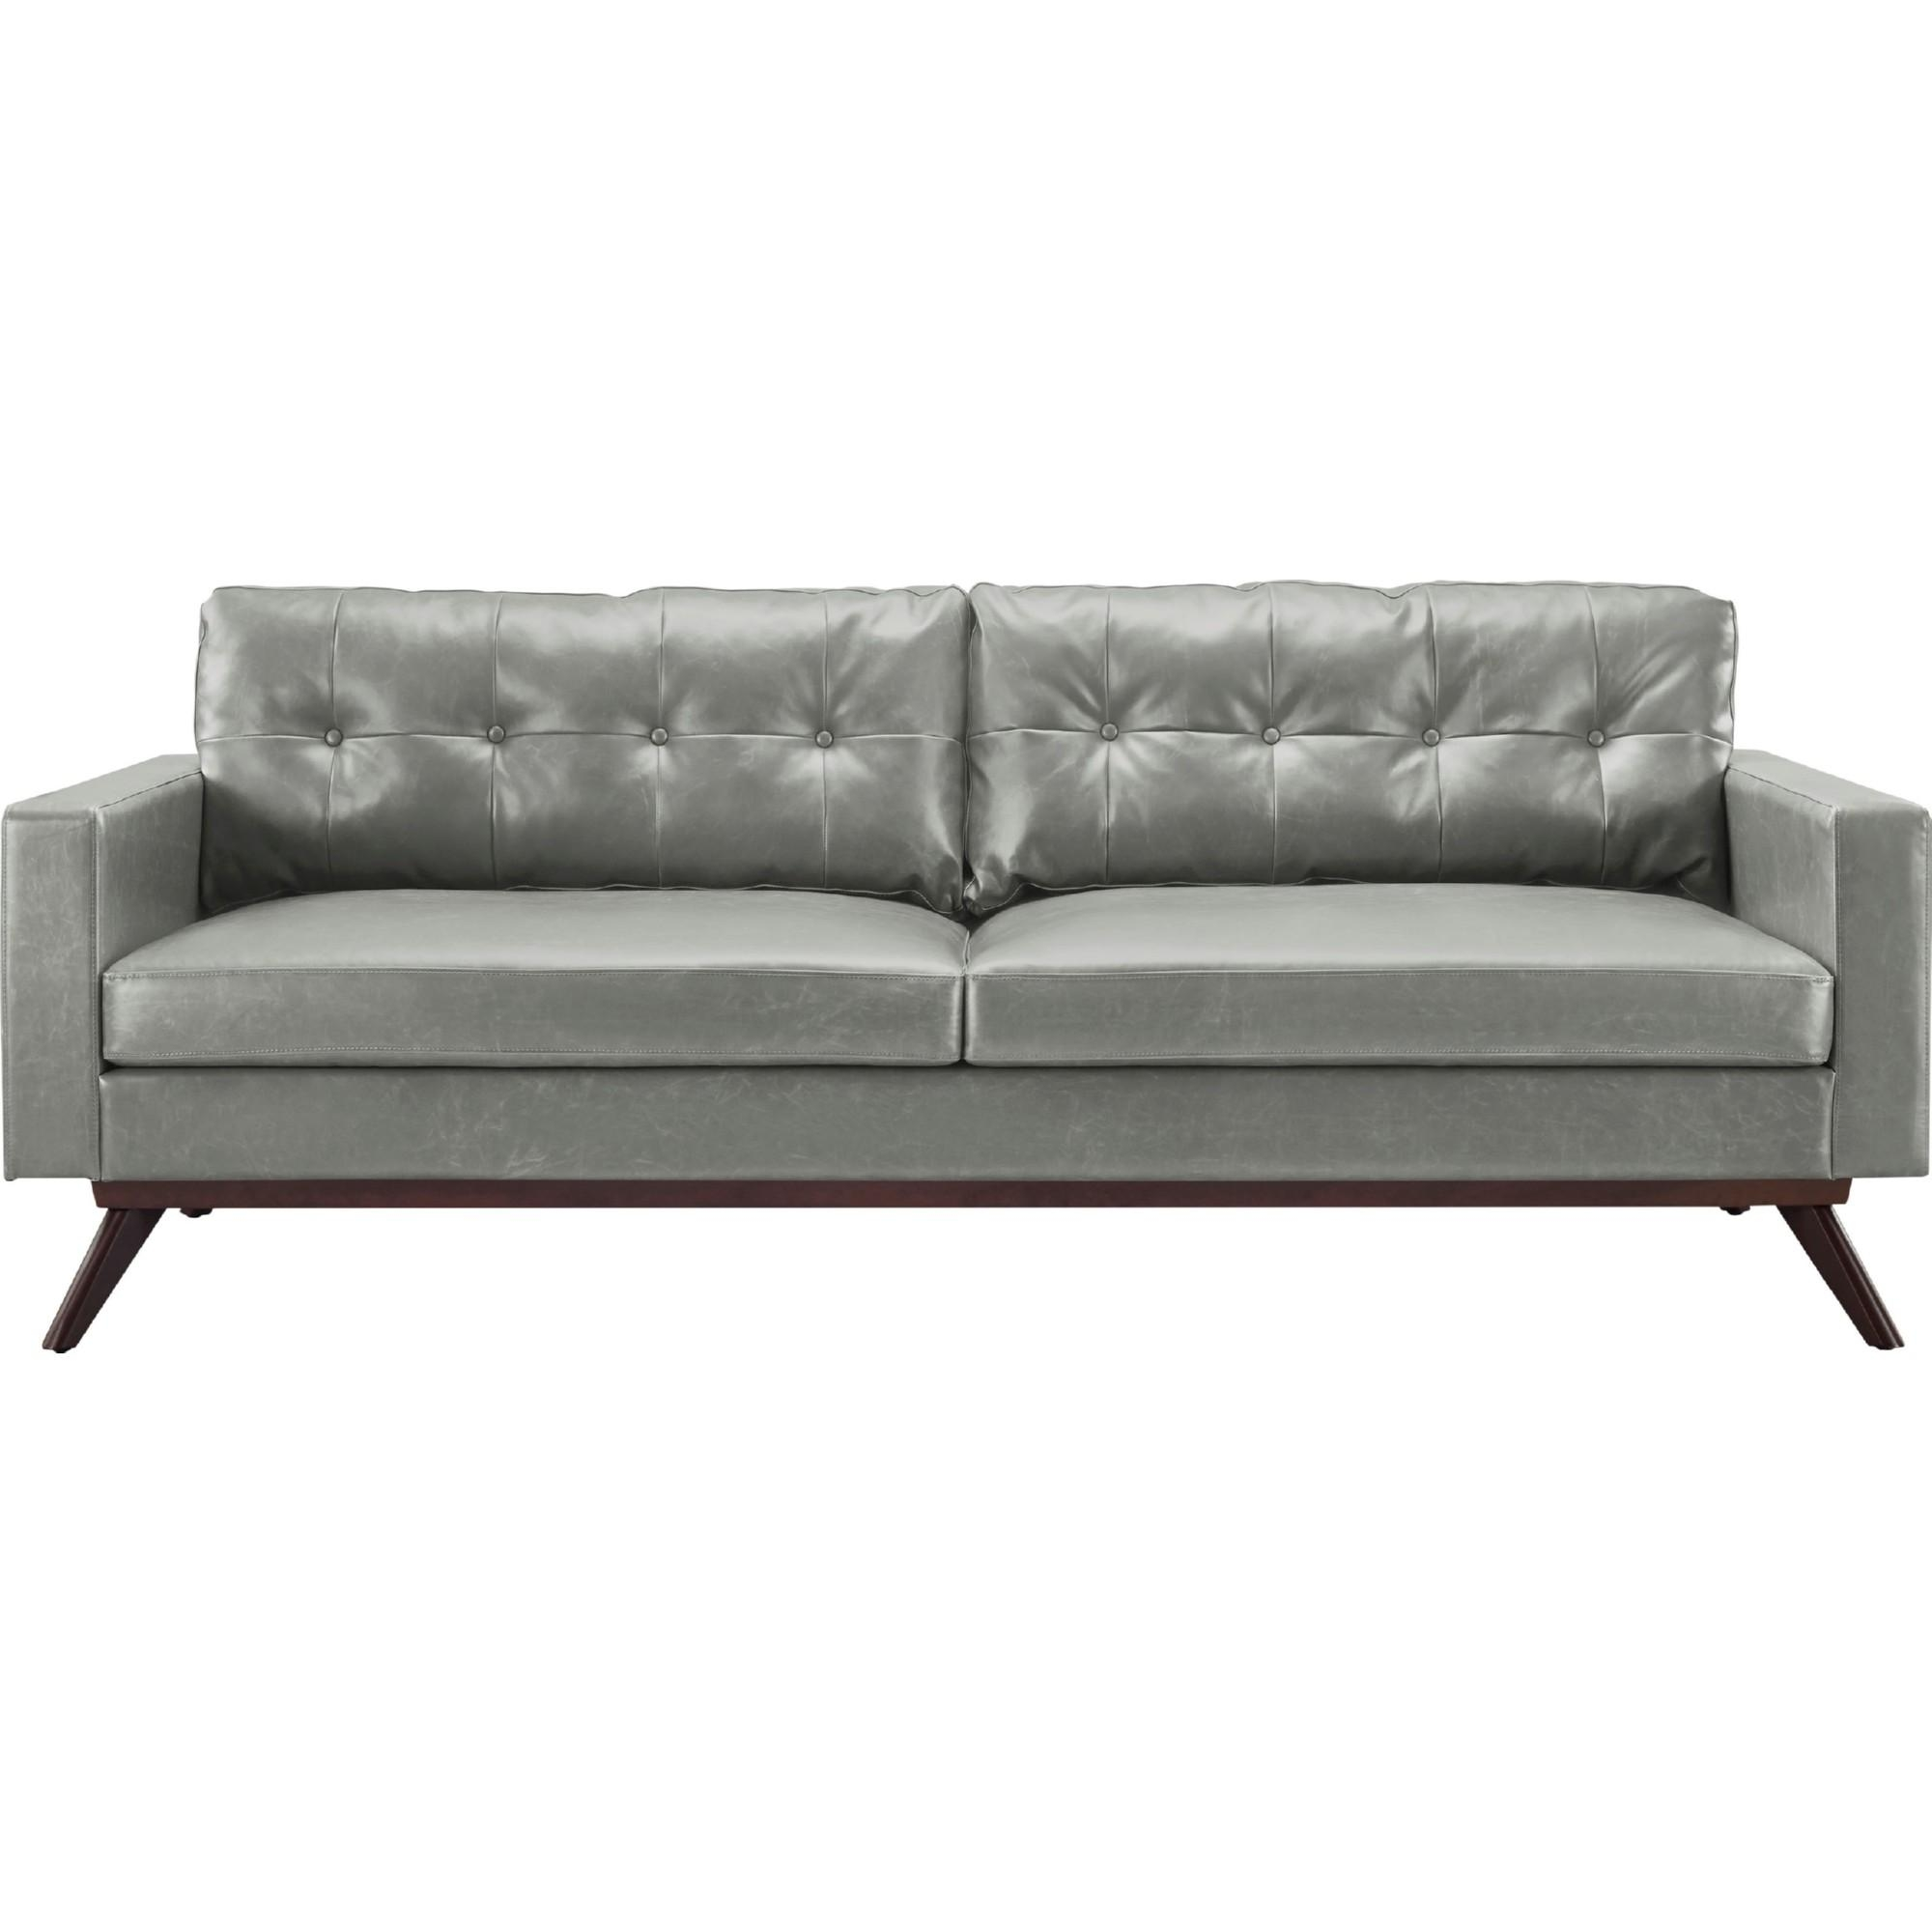 Affordable Tufted Sofa | Sofa Gallery | Kengire Intended For Affordable Tufted Sofa (Image 4 of 20)